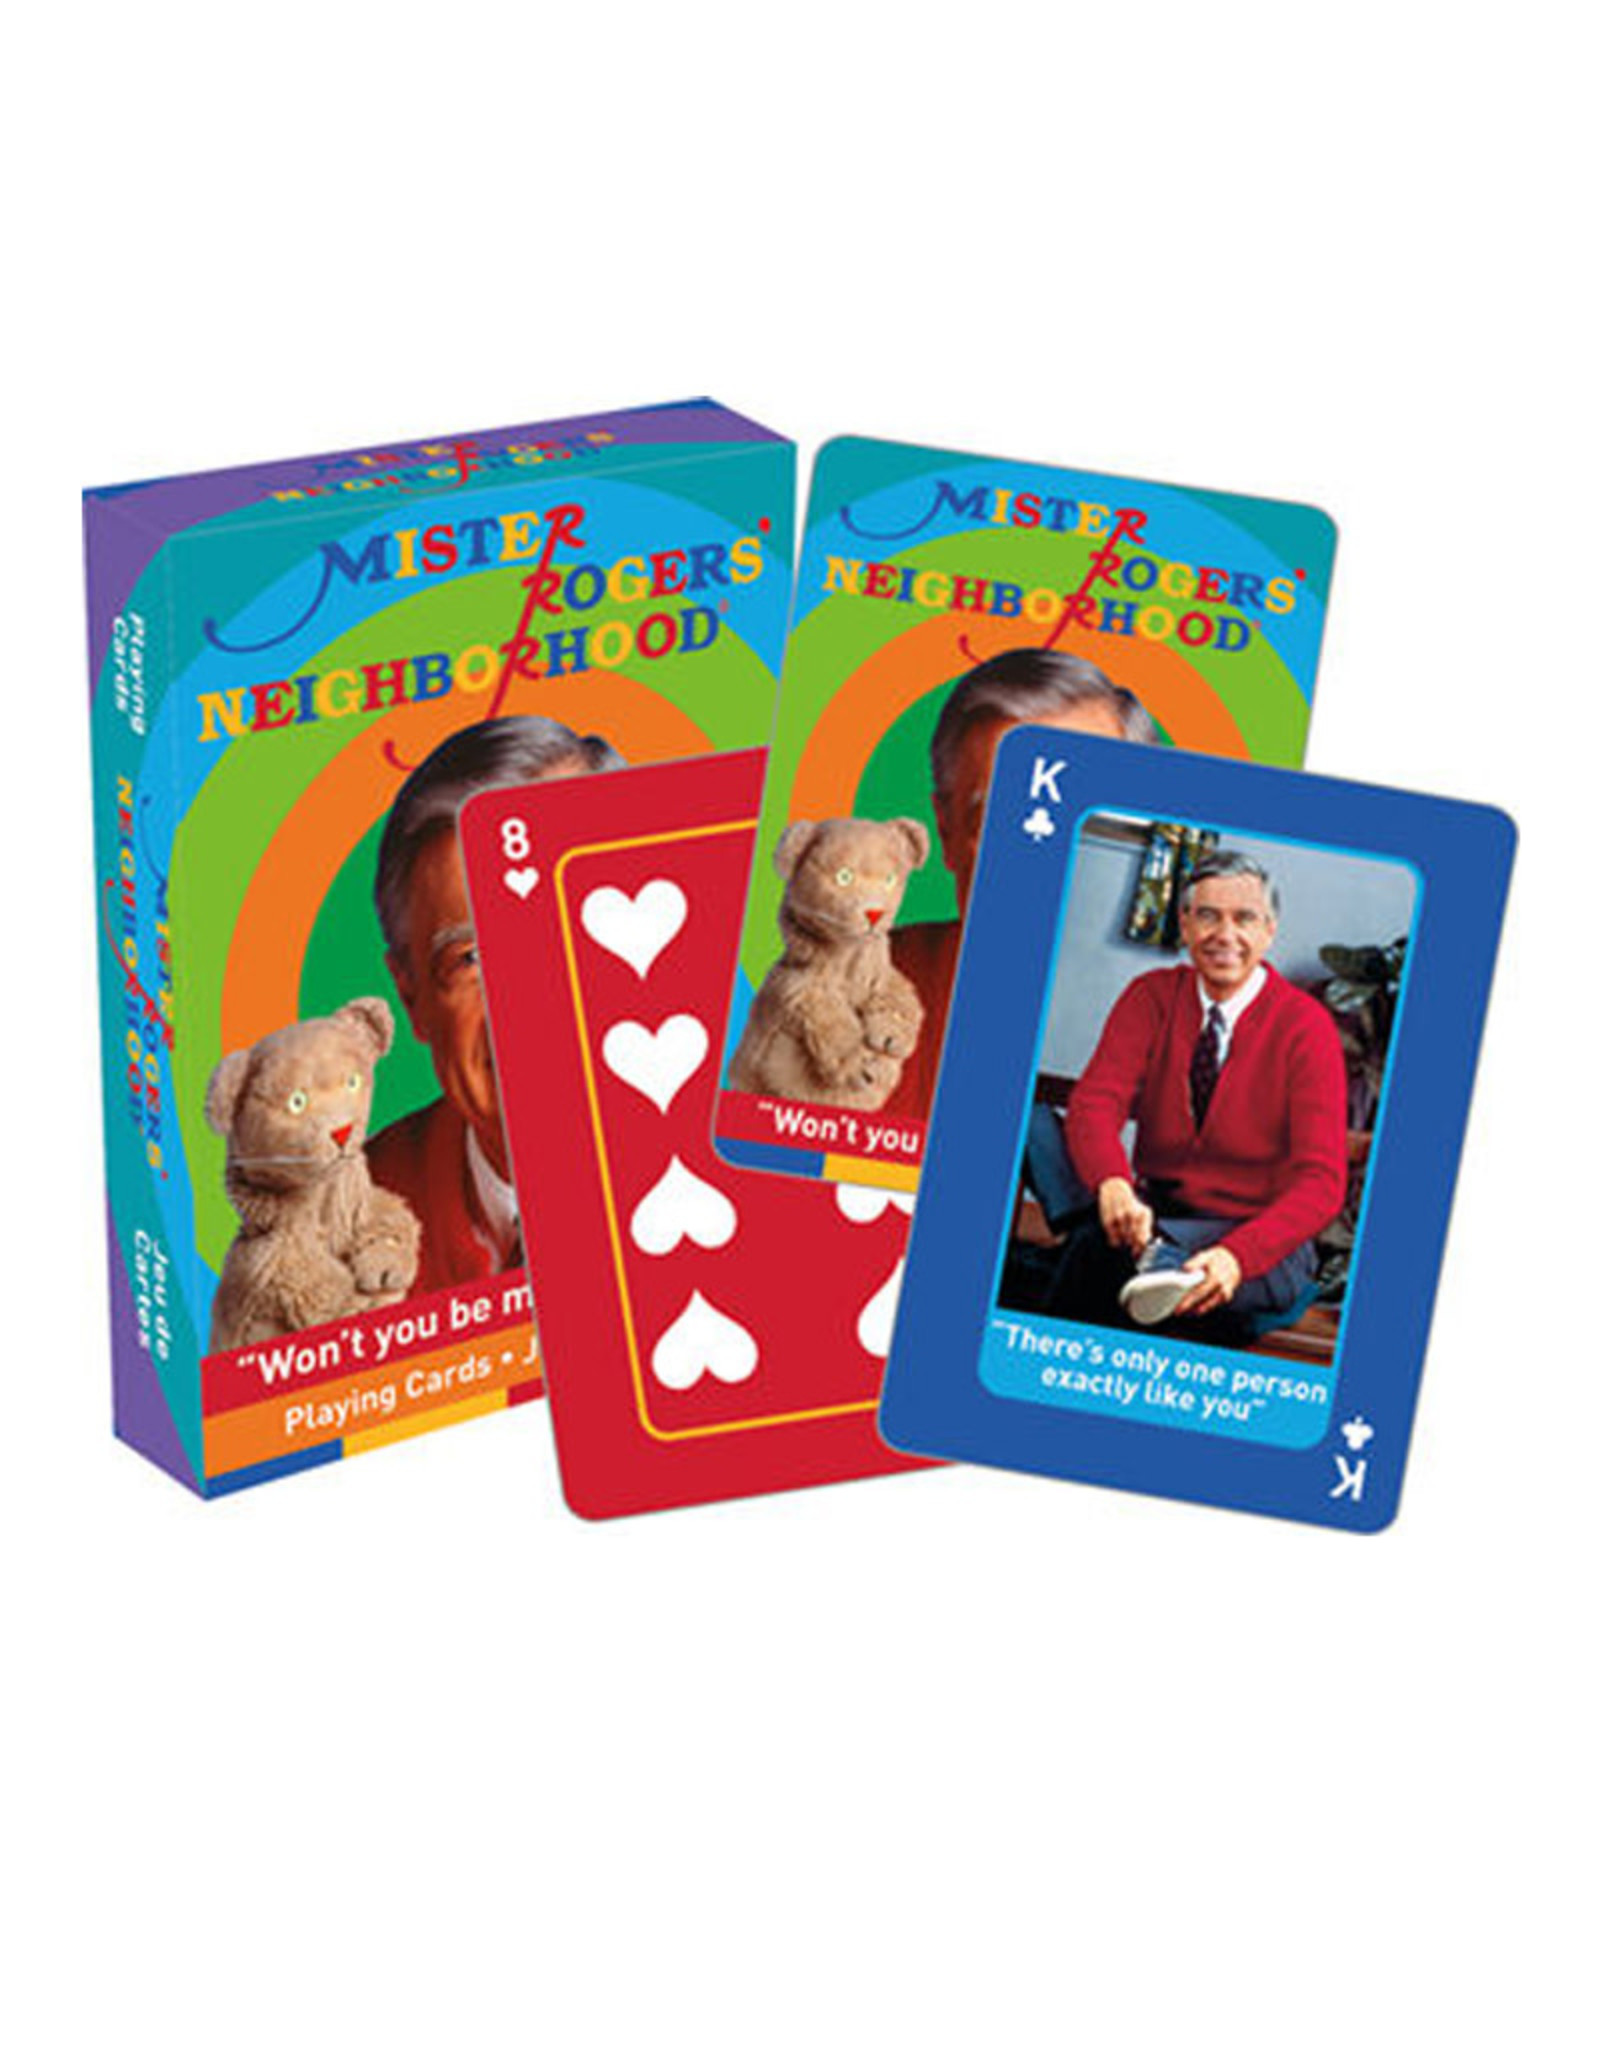 Mister Rogers Neighborhood ( Playing cards )